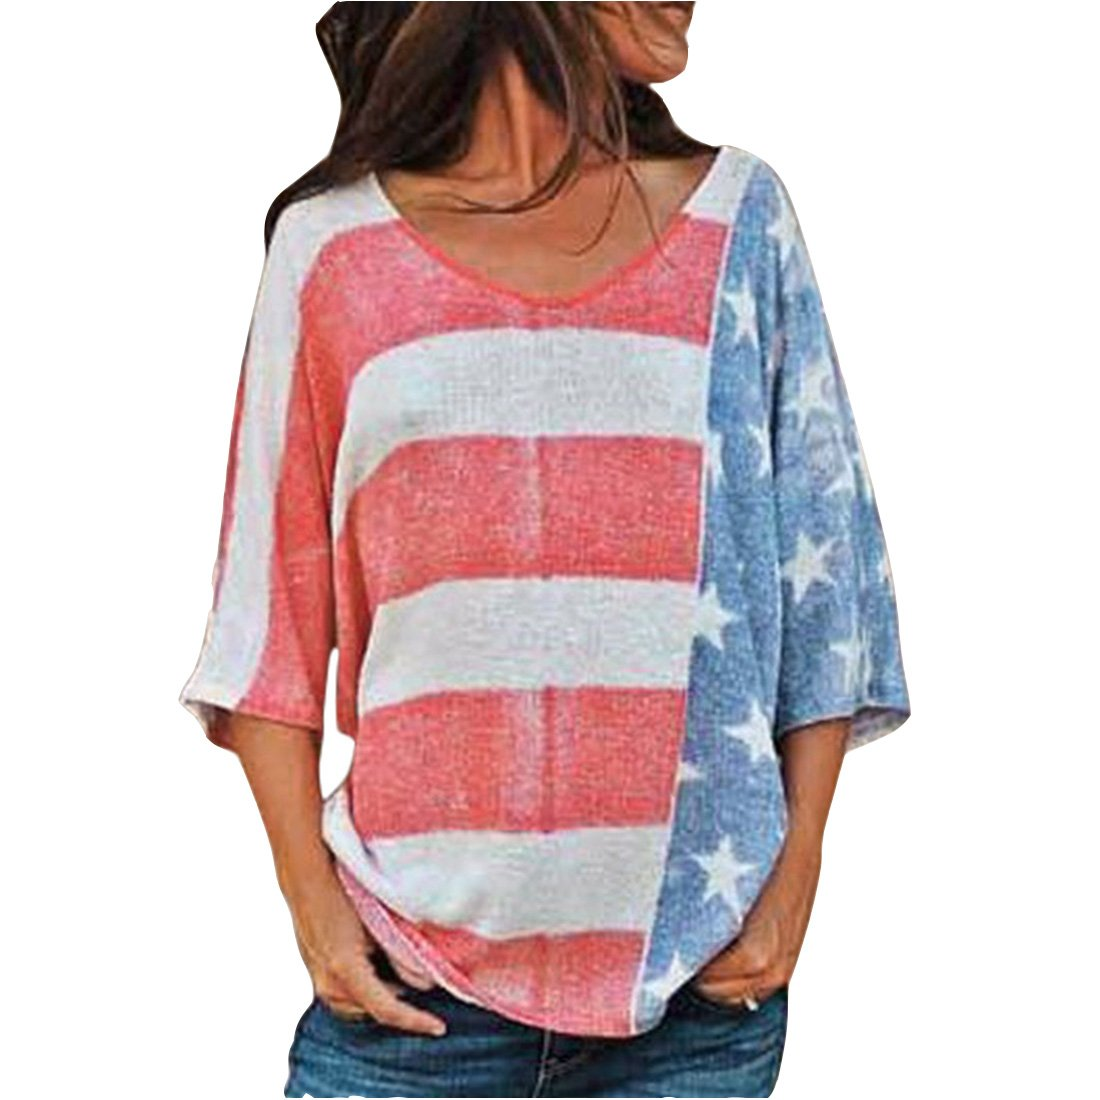 FEIYOUNG Women's 3/4 Sleeve Loose Casual USA Flag Star Printed Summer Cotton Shirts